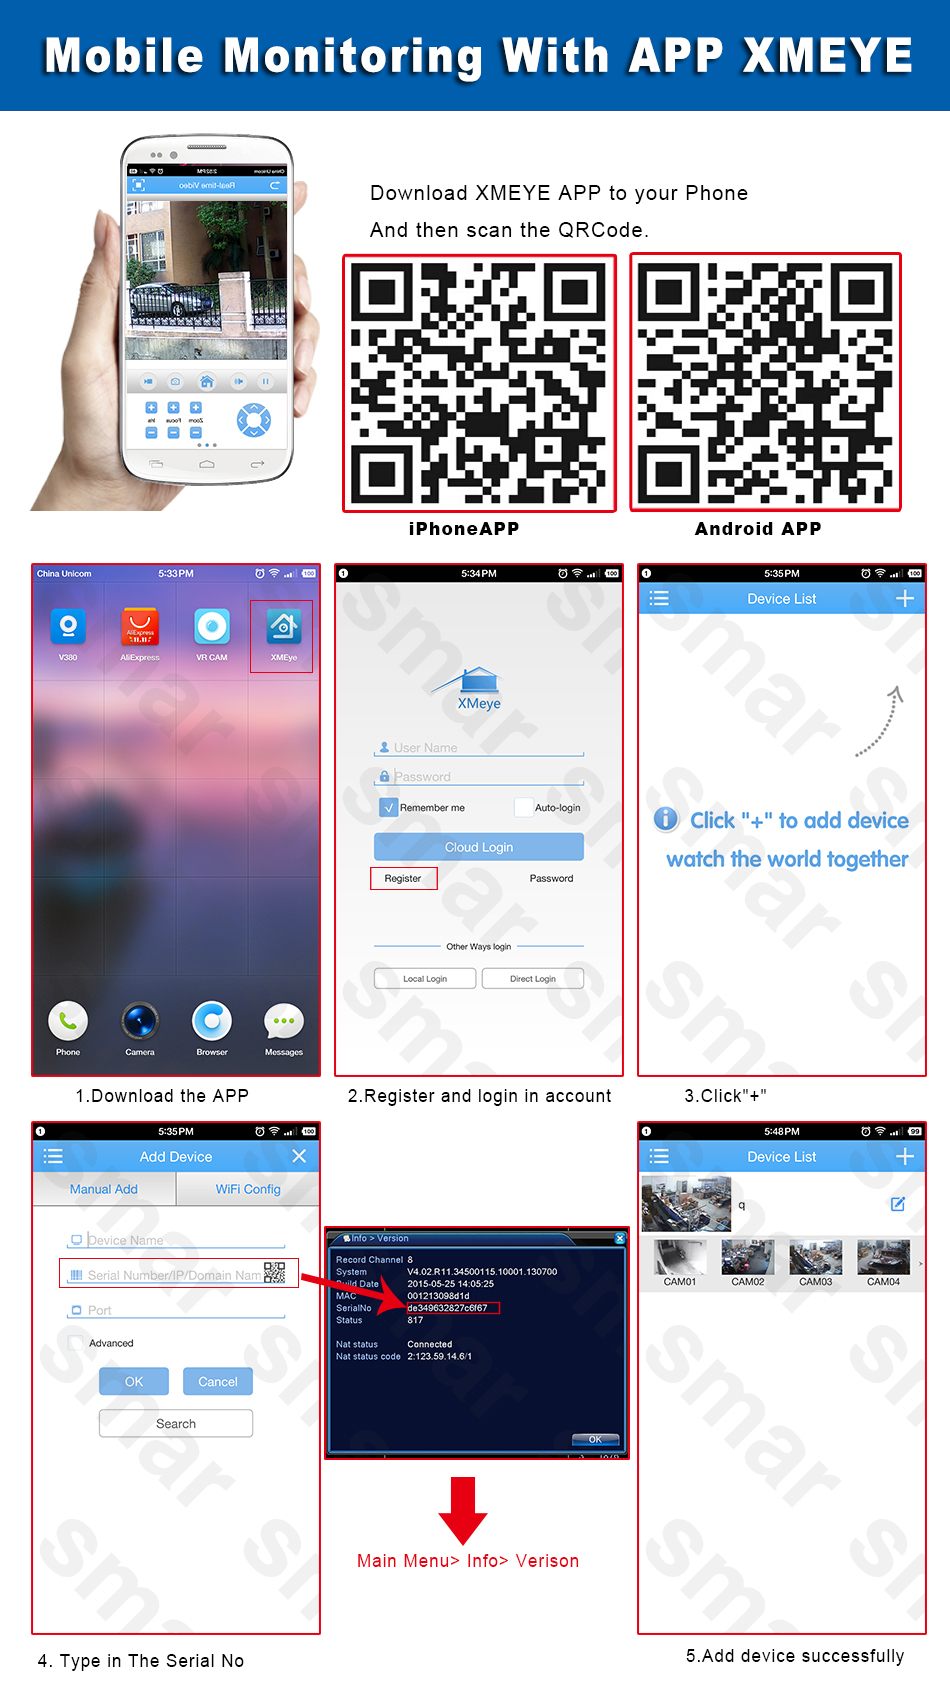 5-Mobile Monitoring With APP XMEYE